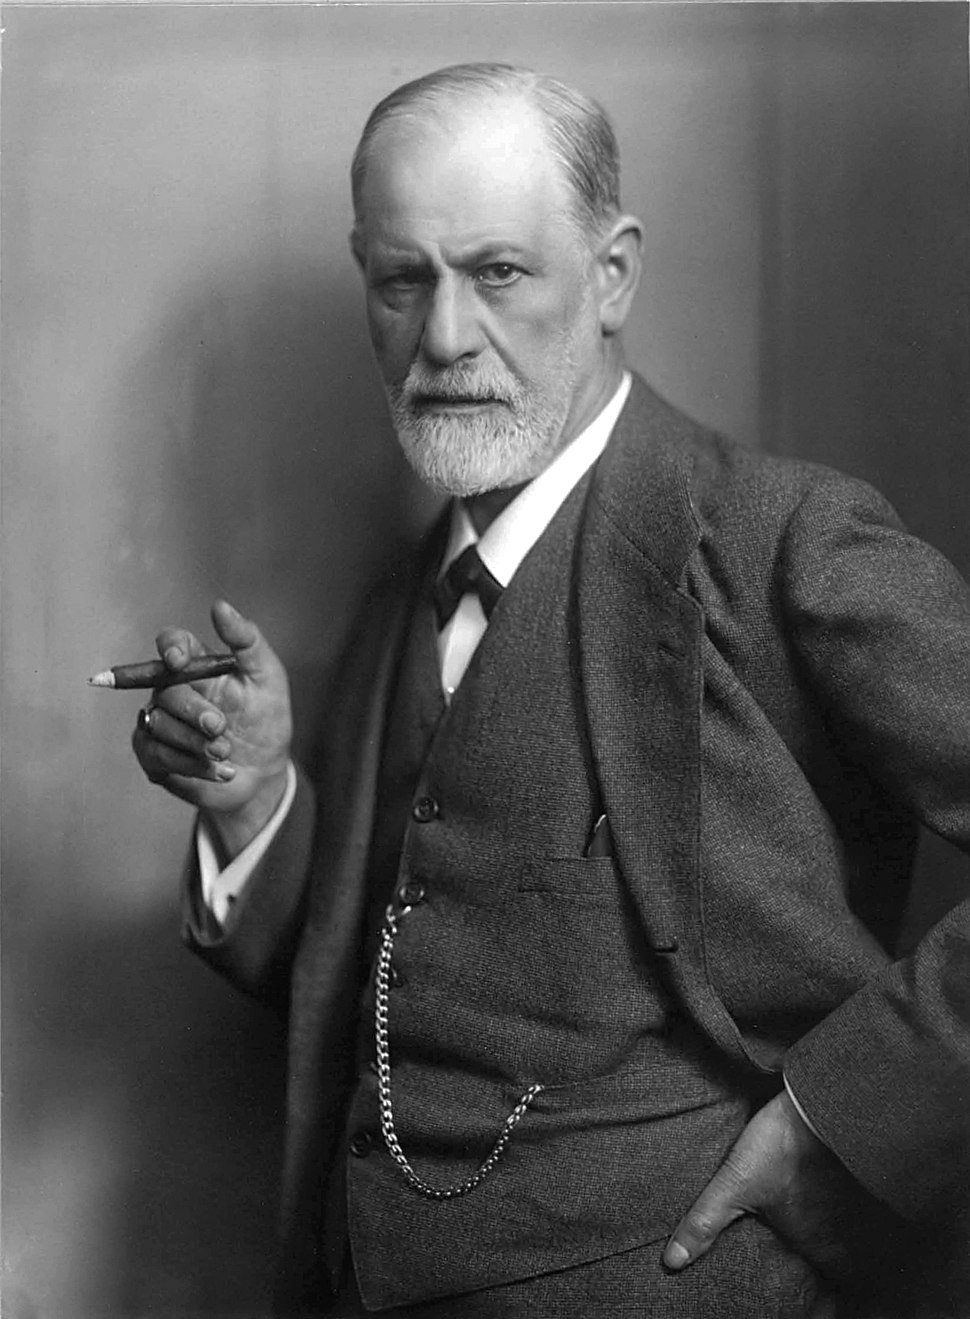 Sigmund Freud, by Max Halberstadt (cropped)